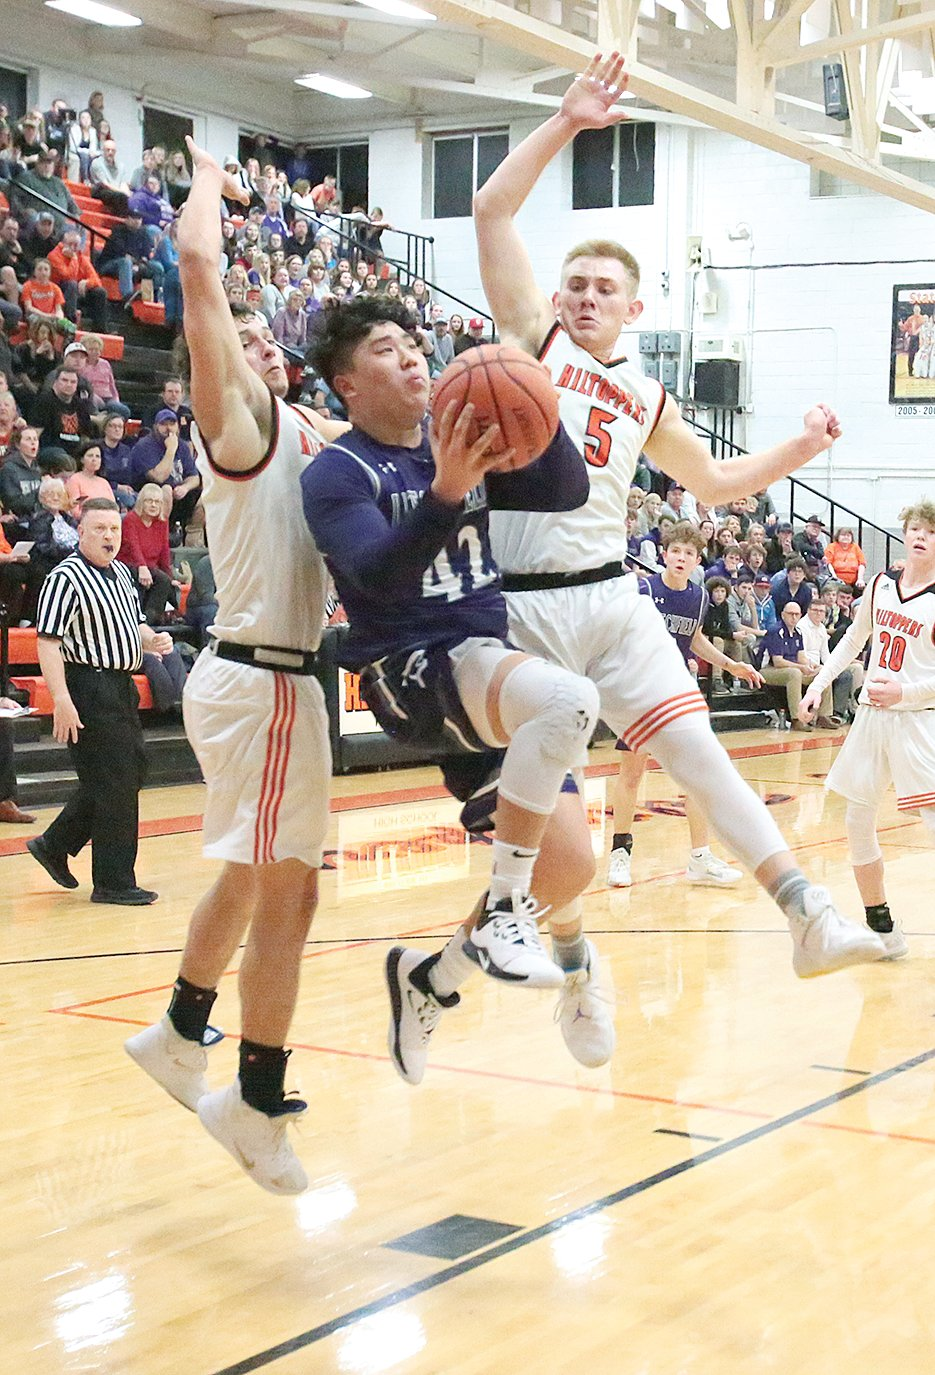 Hillsboro's Nic Ondrey (left) and Jace Tuetken (right) try to impede John Corso's path to the basket during the Toppers' game against Litchfield on Friday, Feb. 21. Corso would put in a game-high 25 points in the Panthers' 61-60 win over the Hiltoppers.